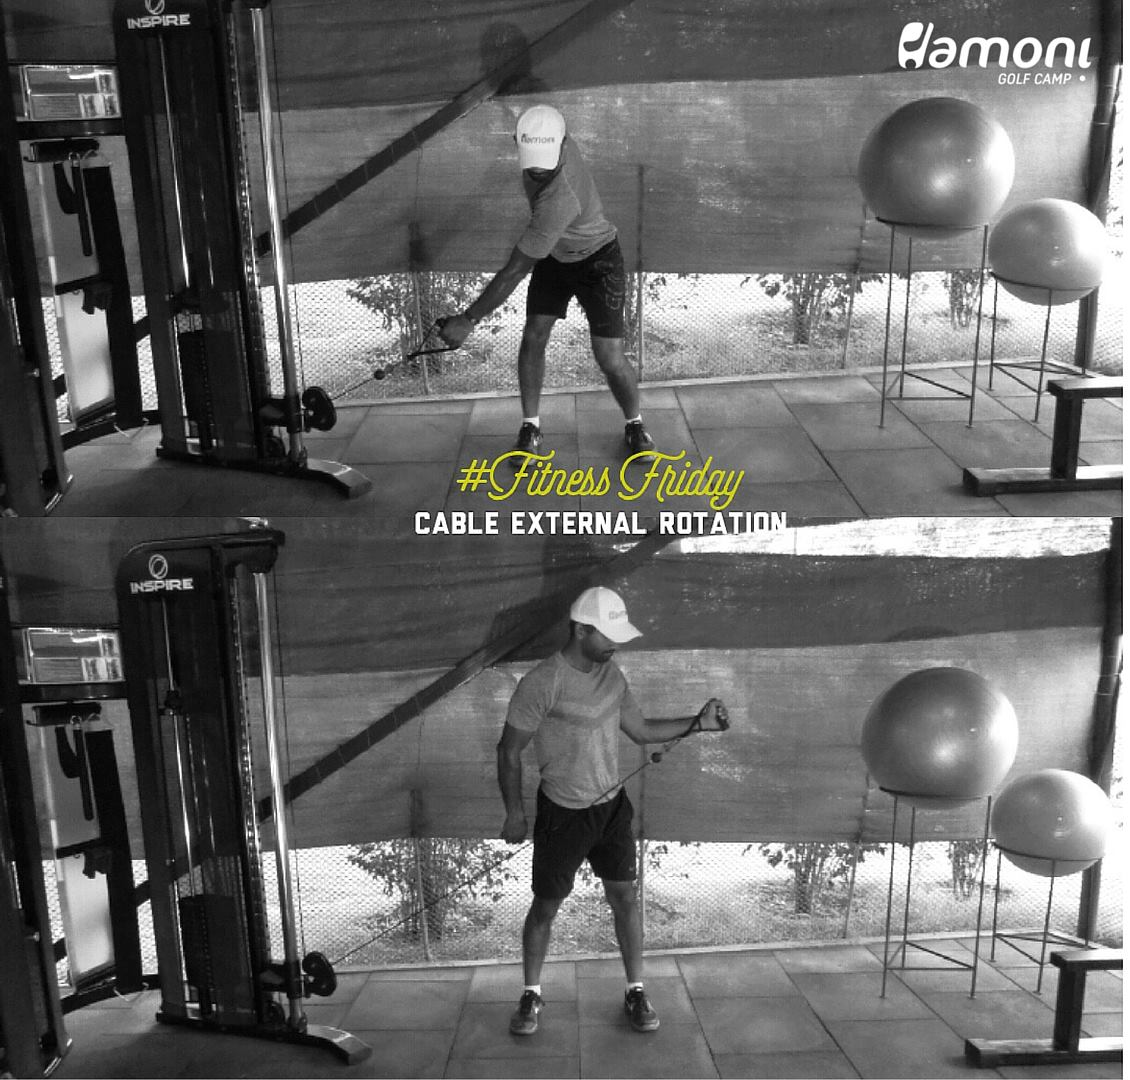 HGC FITNESS FRIDAY: Cable External Rotation